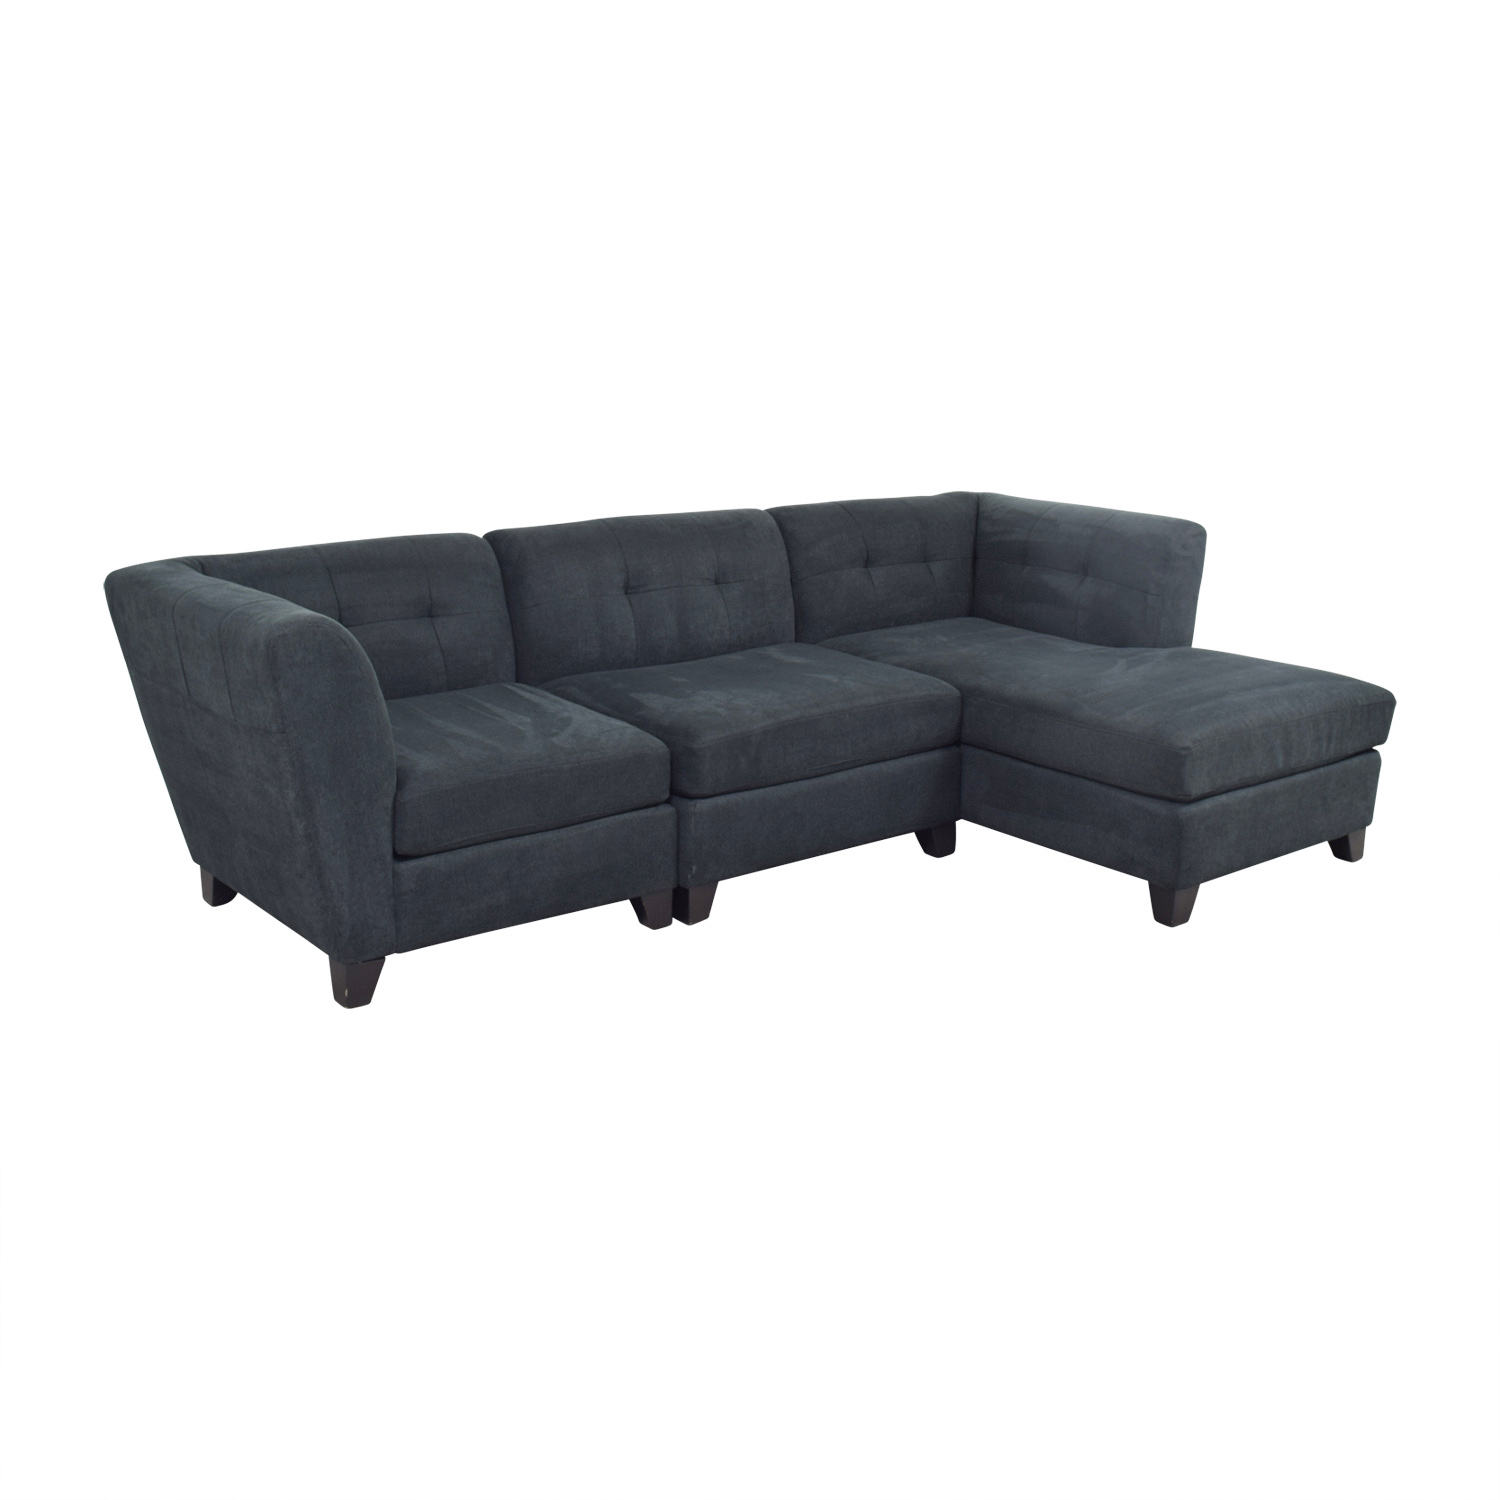 69 Off Raymour Flanigan Raymour Flanigan Tate Microfiber Sectional Sofas